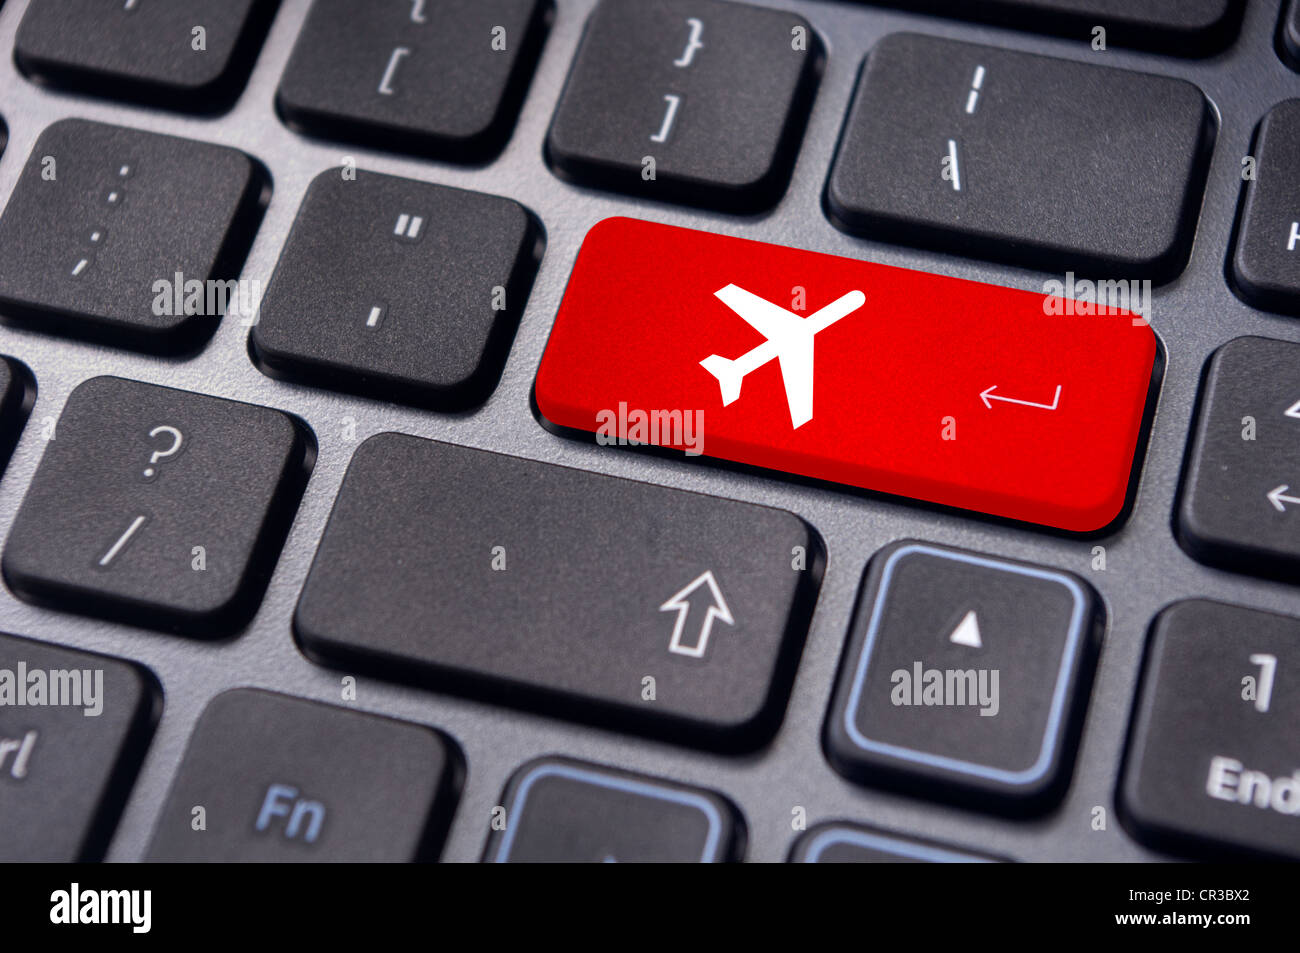 a plane sign on keyboard, to illustrate online booking or purchase of plane ticket or business travel concepts. - Stock Image